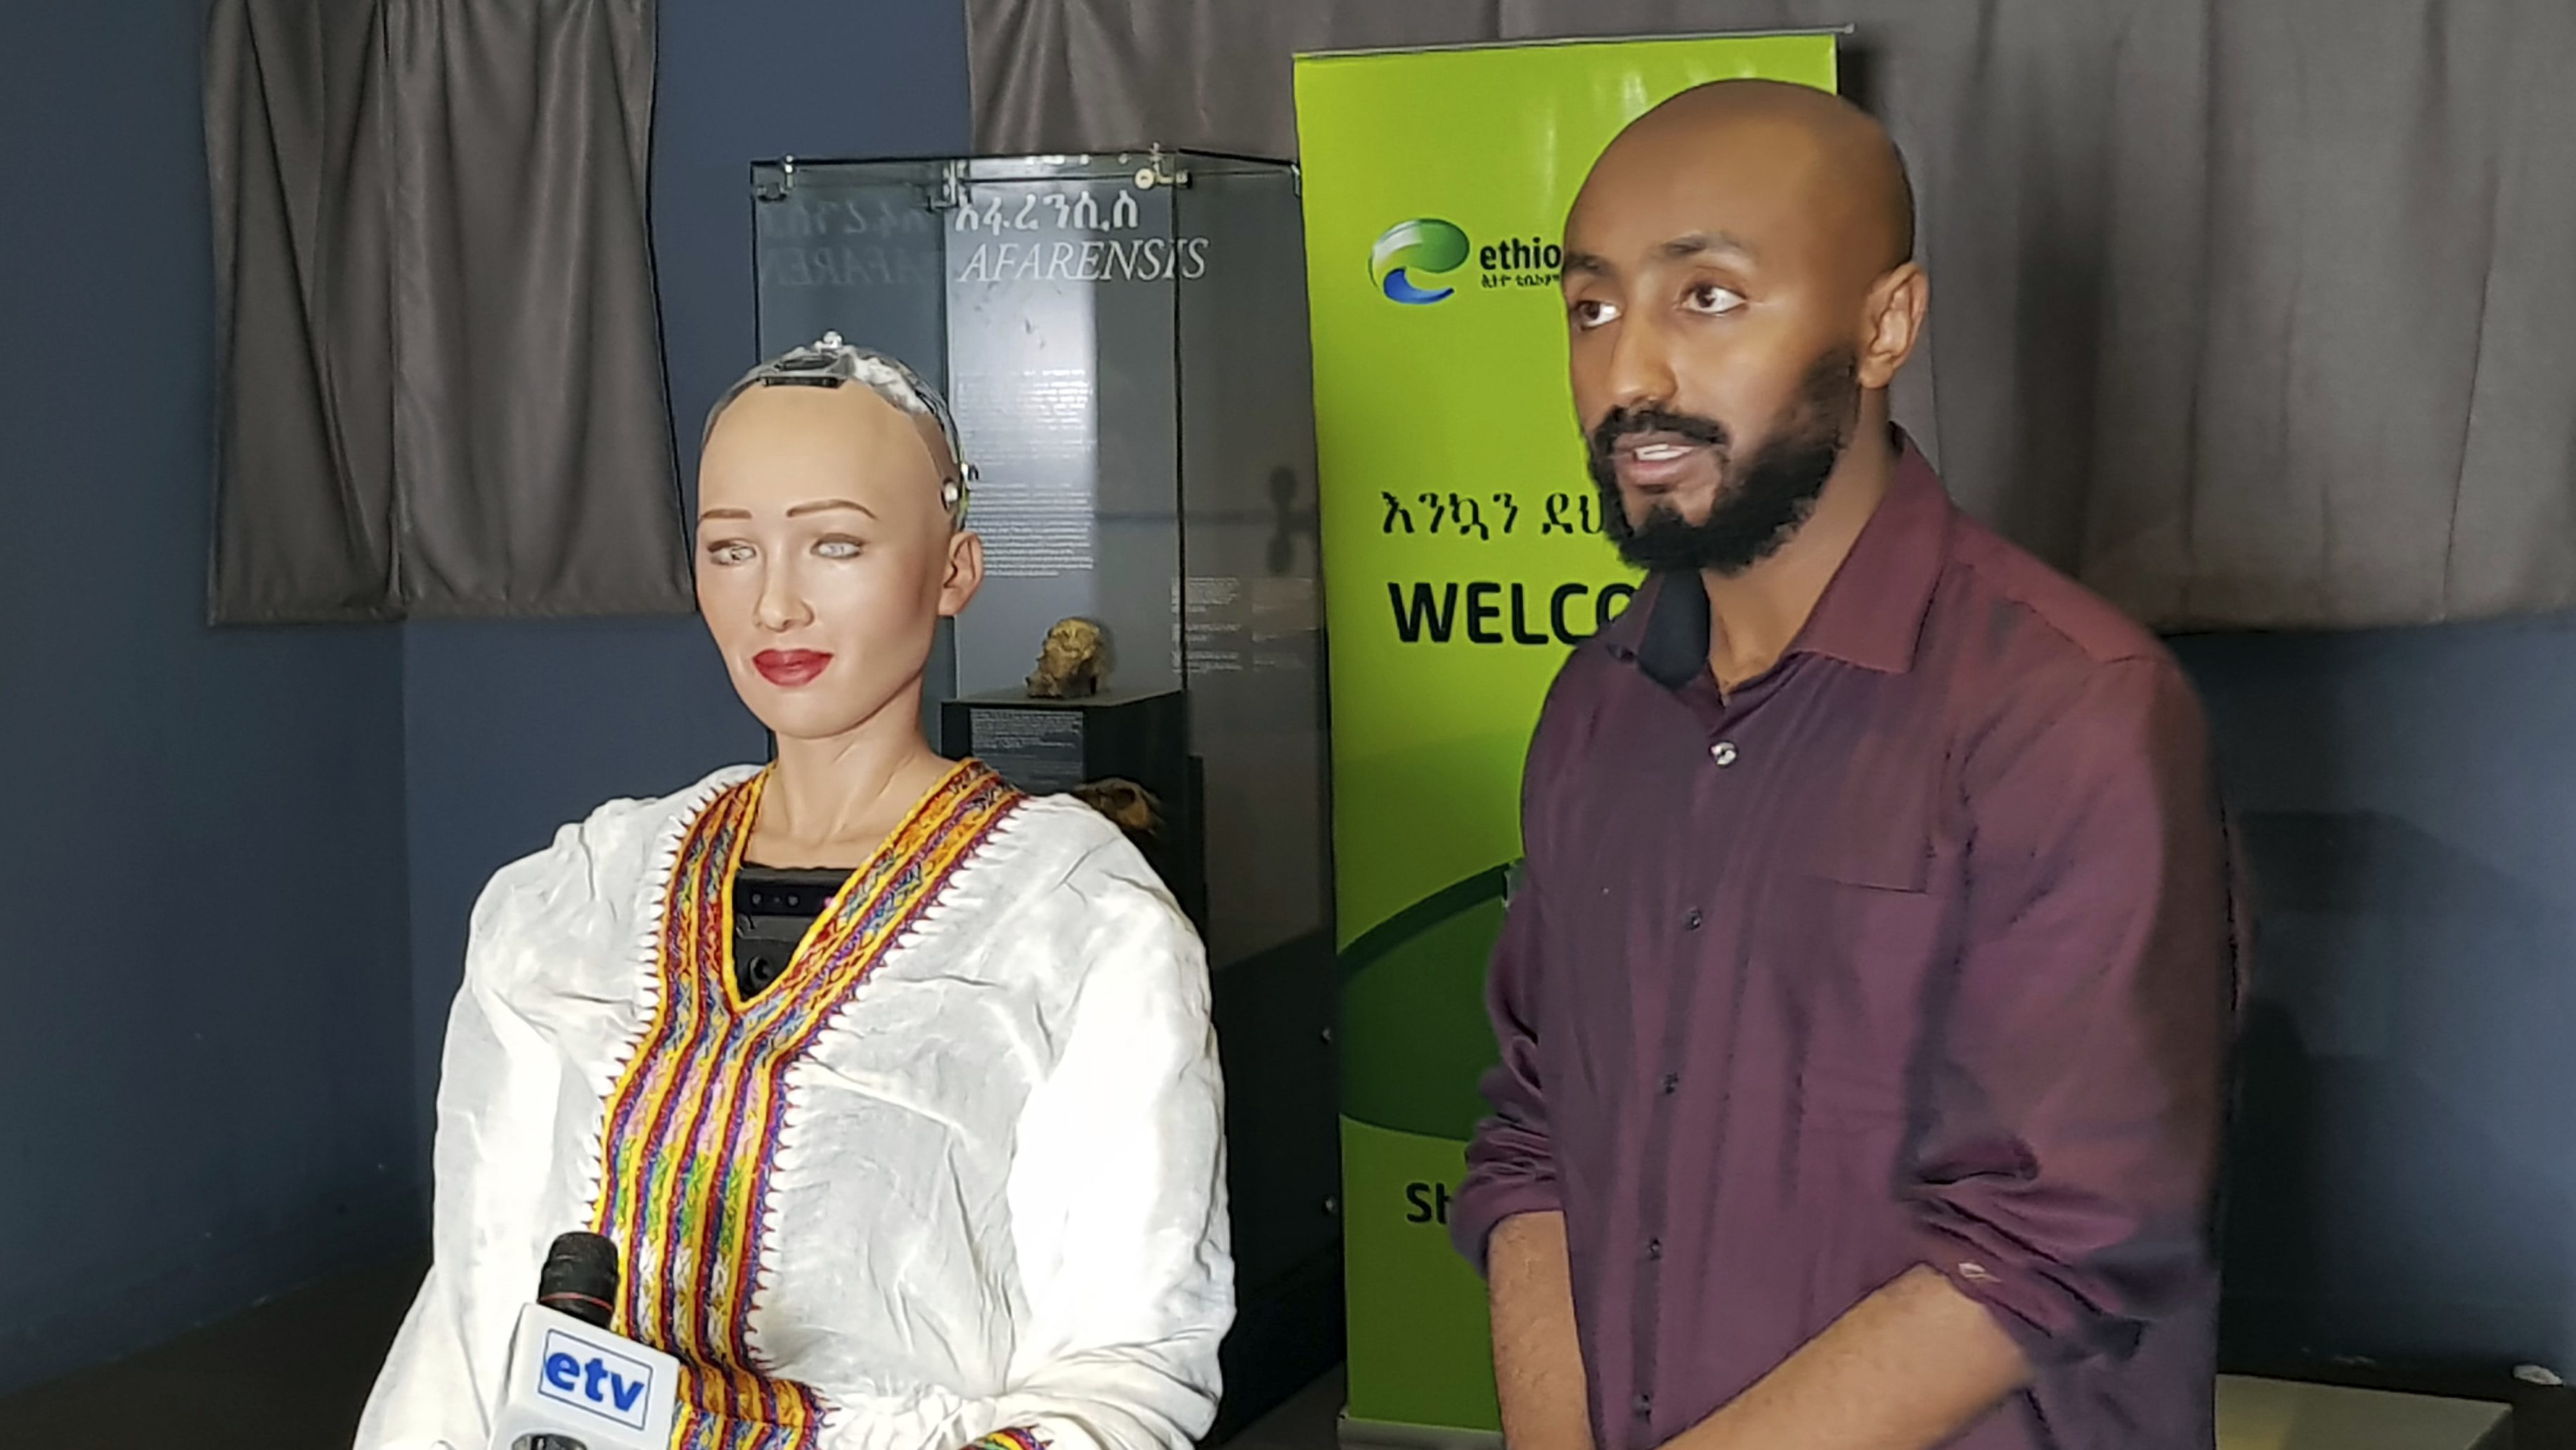 qz.com - Abdi Latif Dahir - Ethiopia's tech startups are ready to run the world, but the internet keeps getting blocked